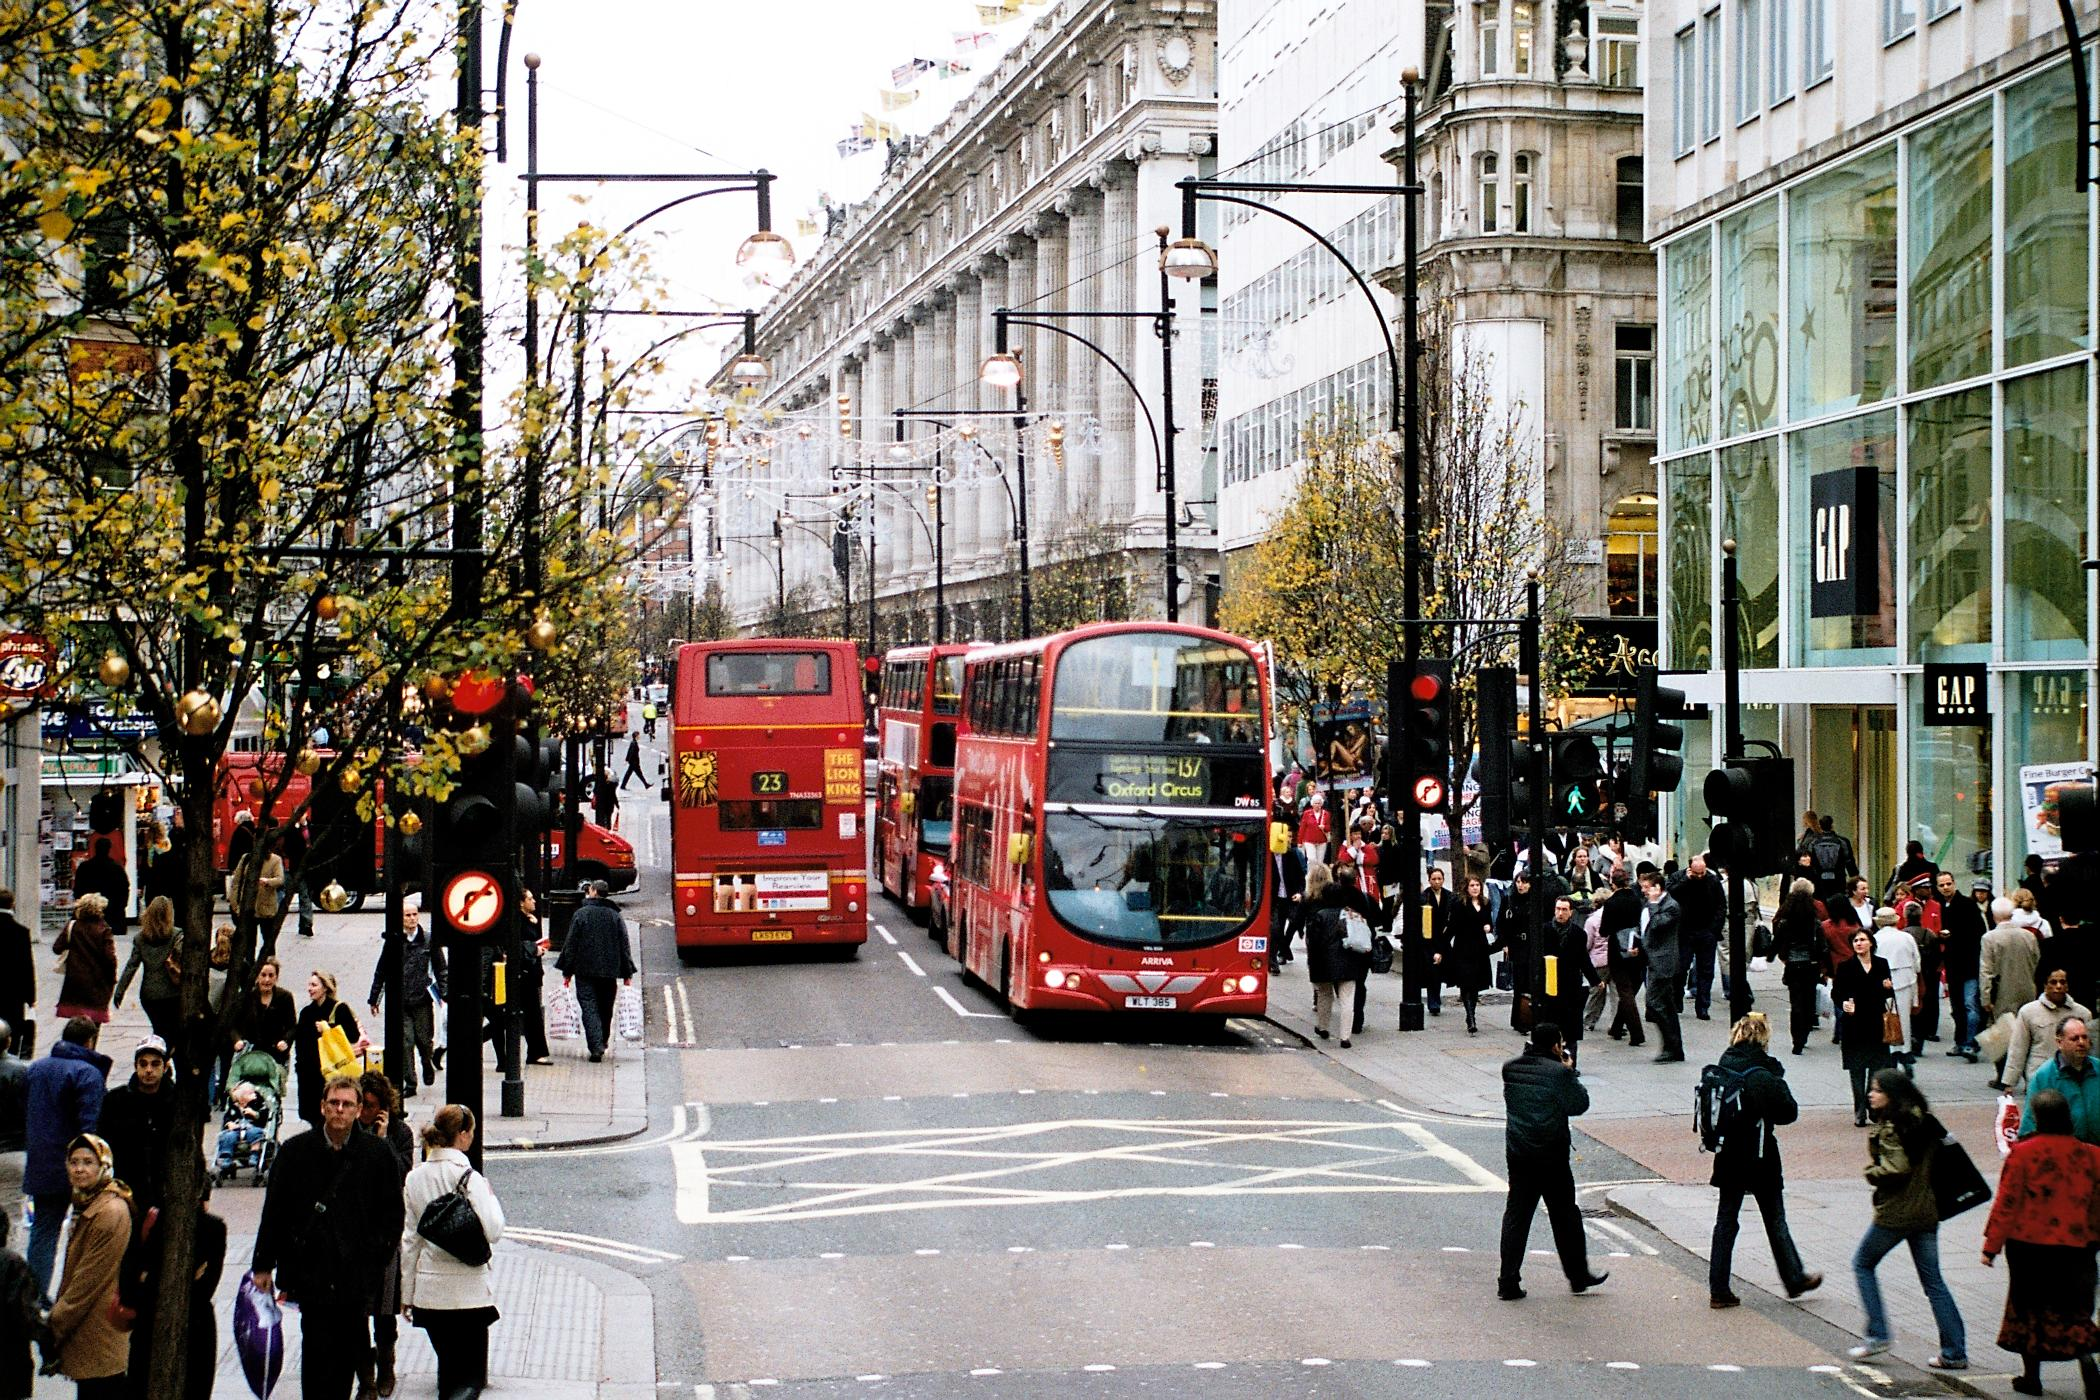 oxford street hd - photo #34